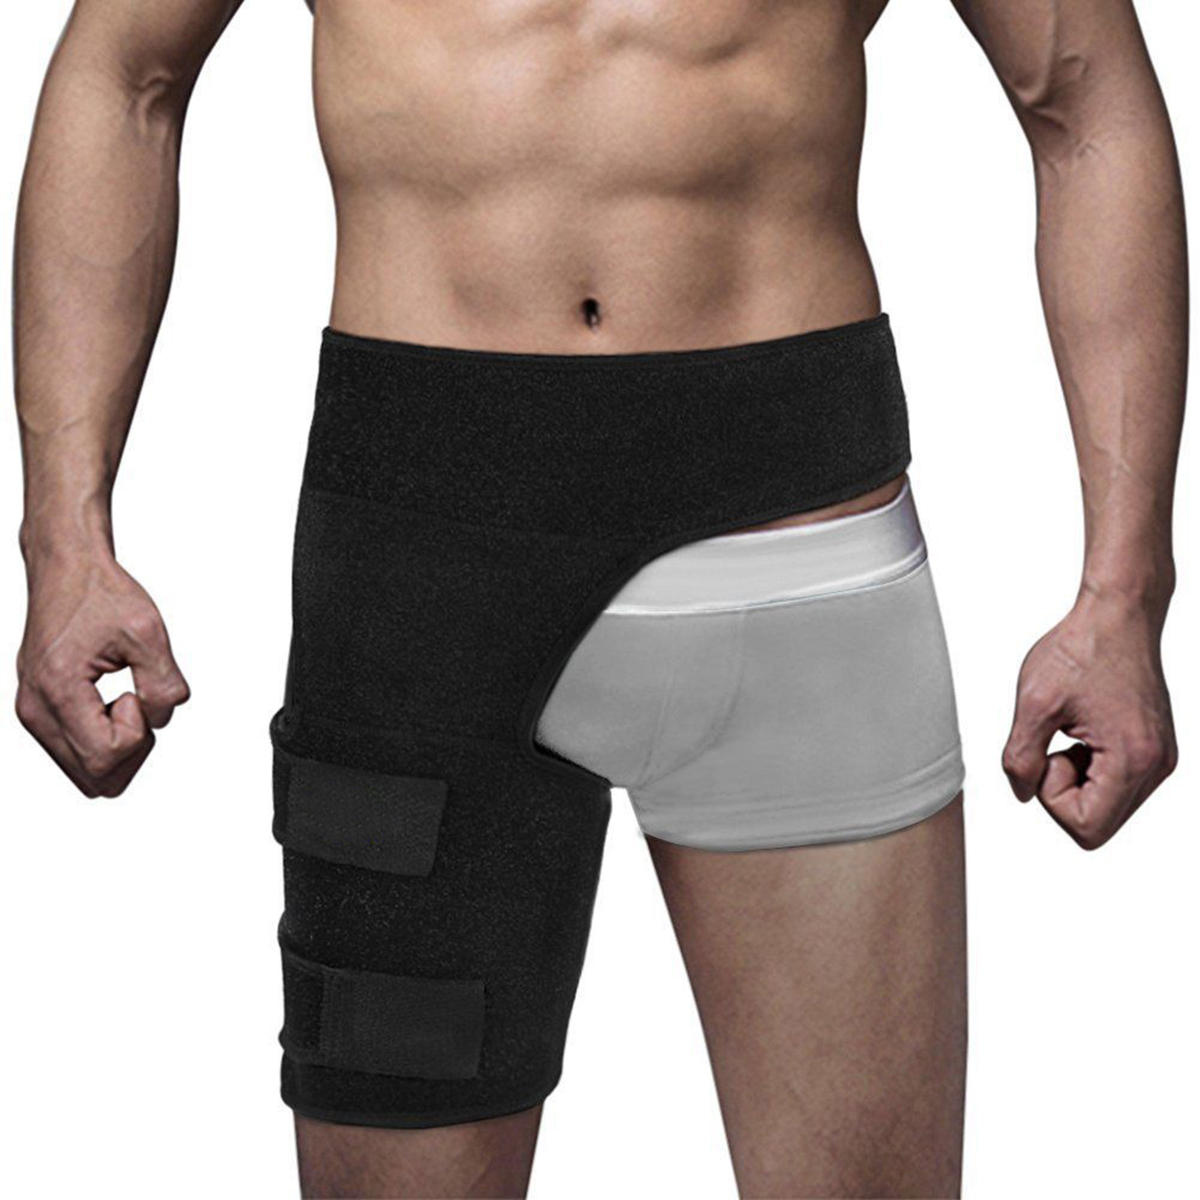 Thigh Support Compression Brace Wrap Black Sprains Therapy Groin Leg Hip Pain Relief